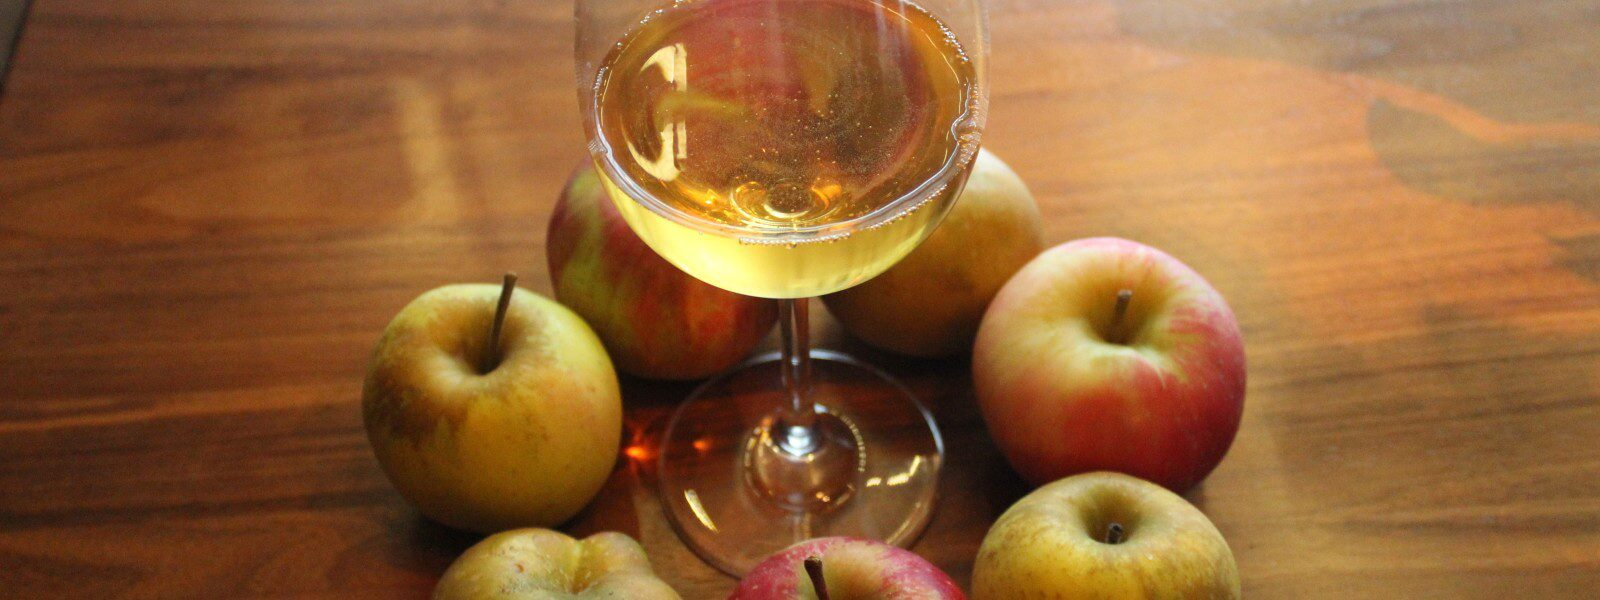 7 apples surrounding a glass of cider.